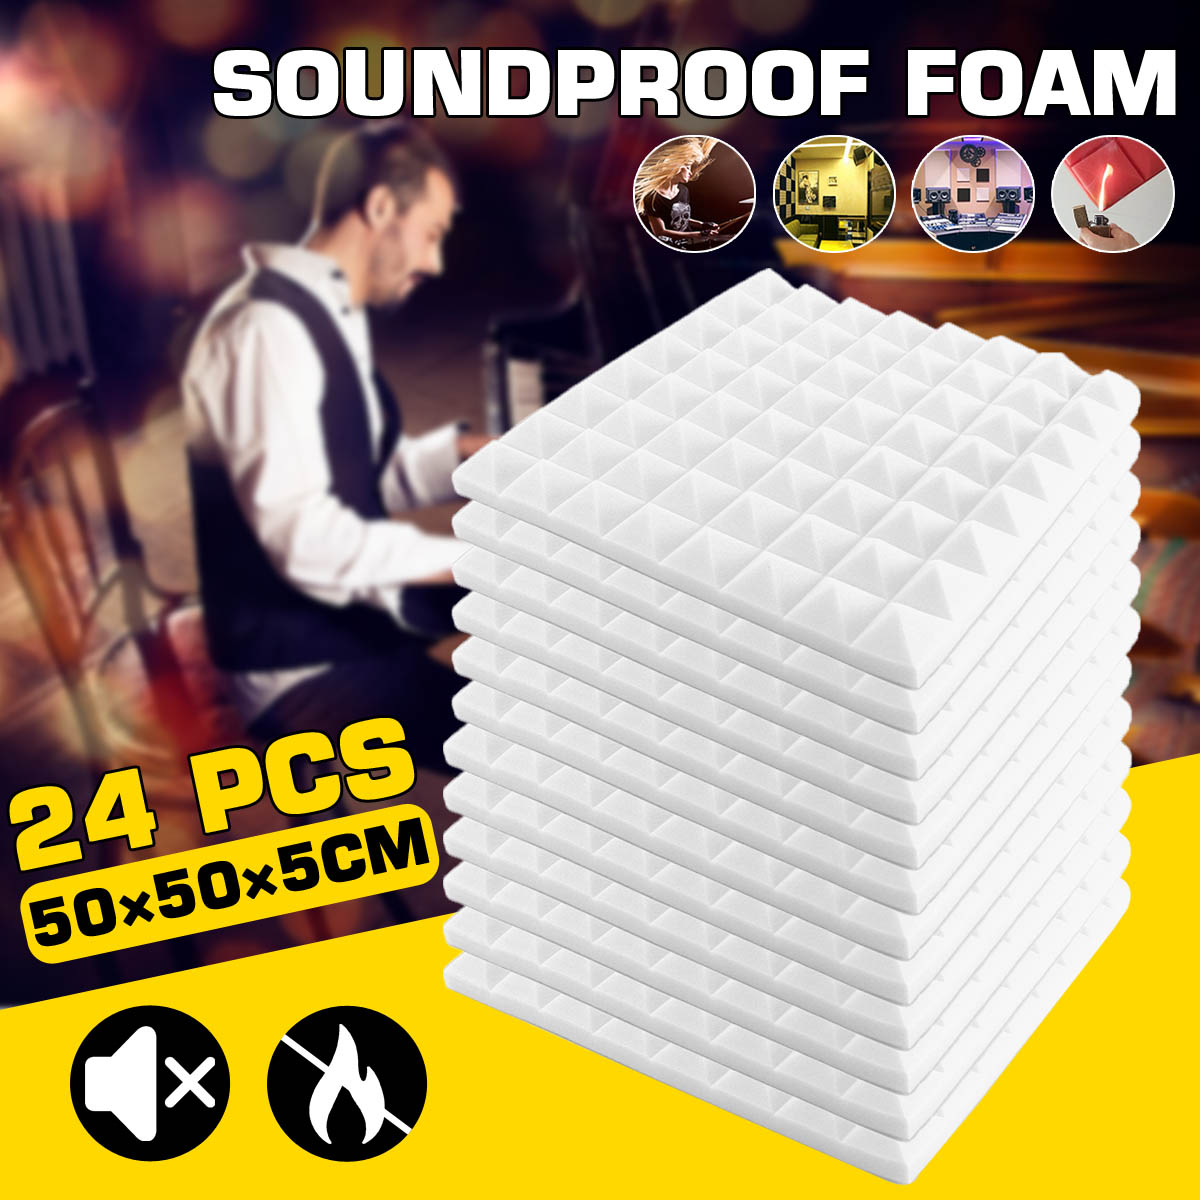 24PCS 50x50x5cm Studio Acoustic Soundproof Foam Sound Absorption Treatment Panel Tile Protective Sponge